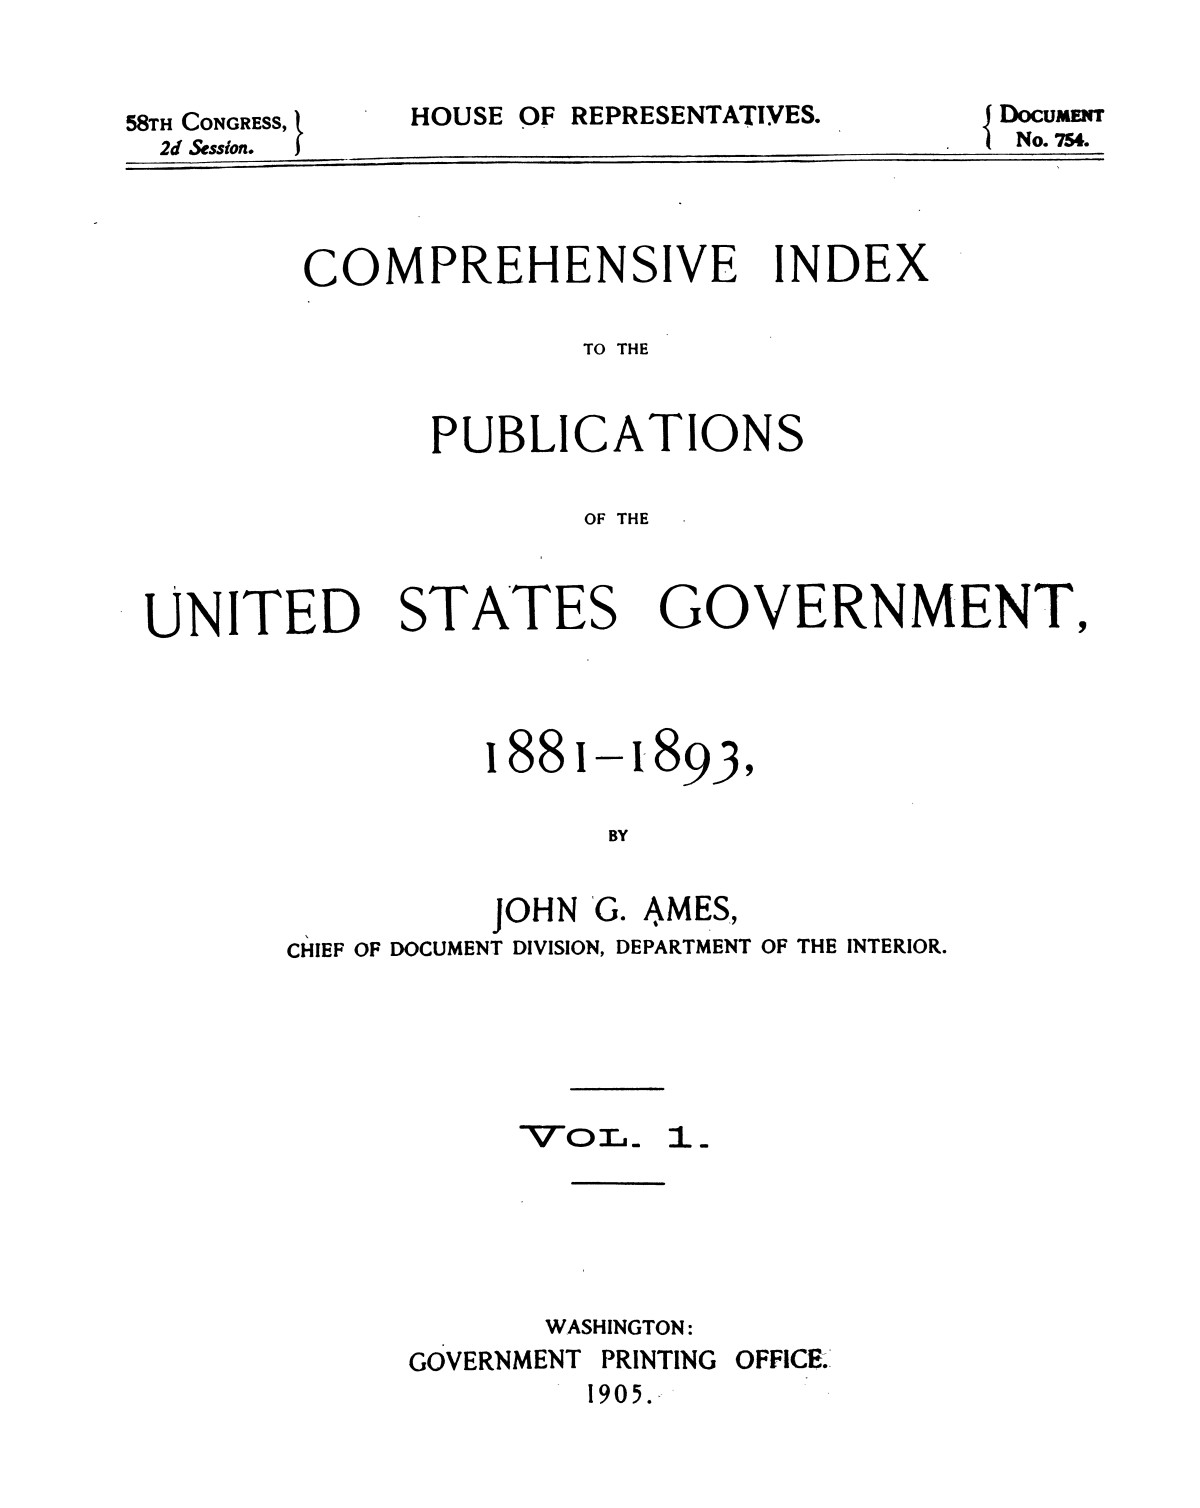 Comprehensive Index to the Publications of the United States Government, 1881-1893, Vol. 1.                                                                                                      I